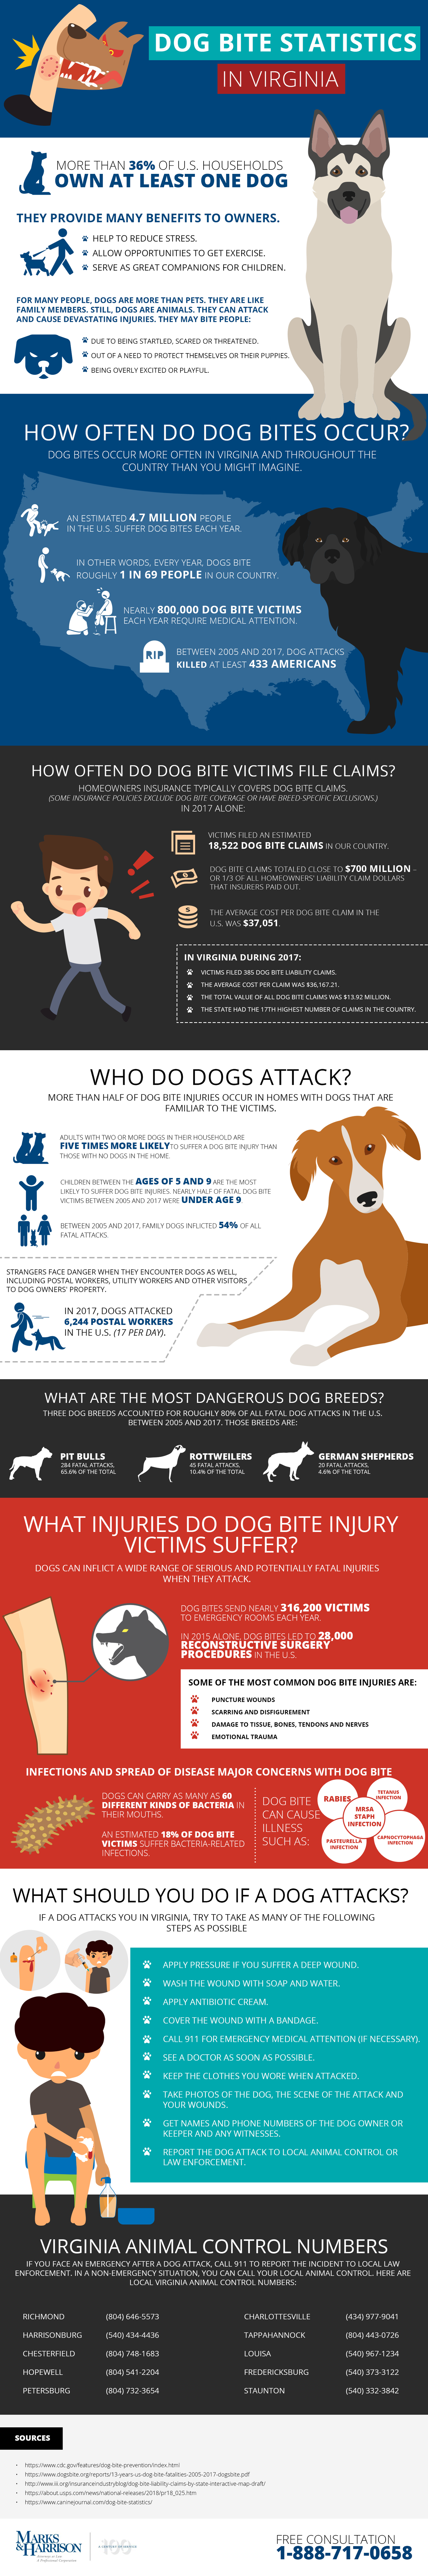 What to Do If You Suffer a Dog Bite in the State of Virginia - Infographic